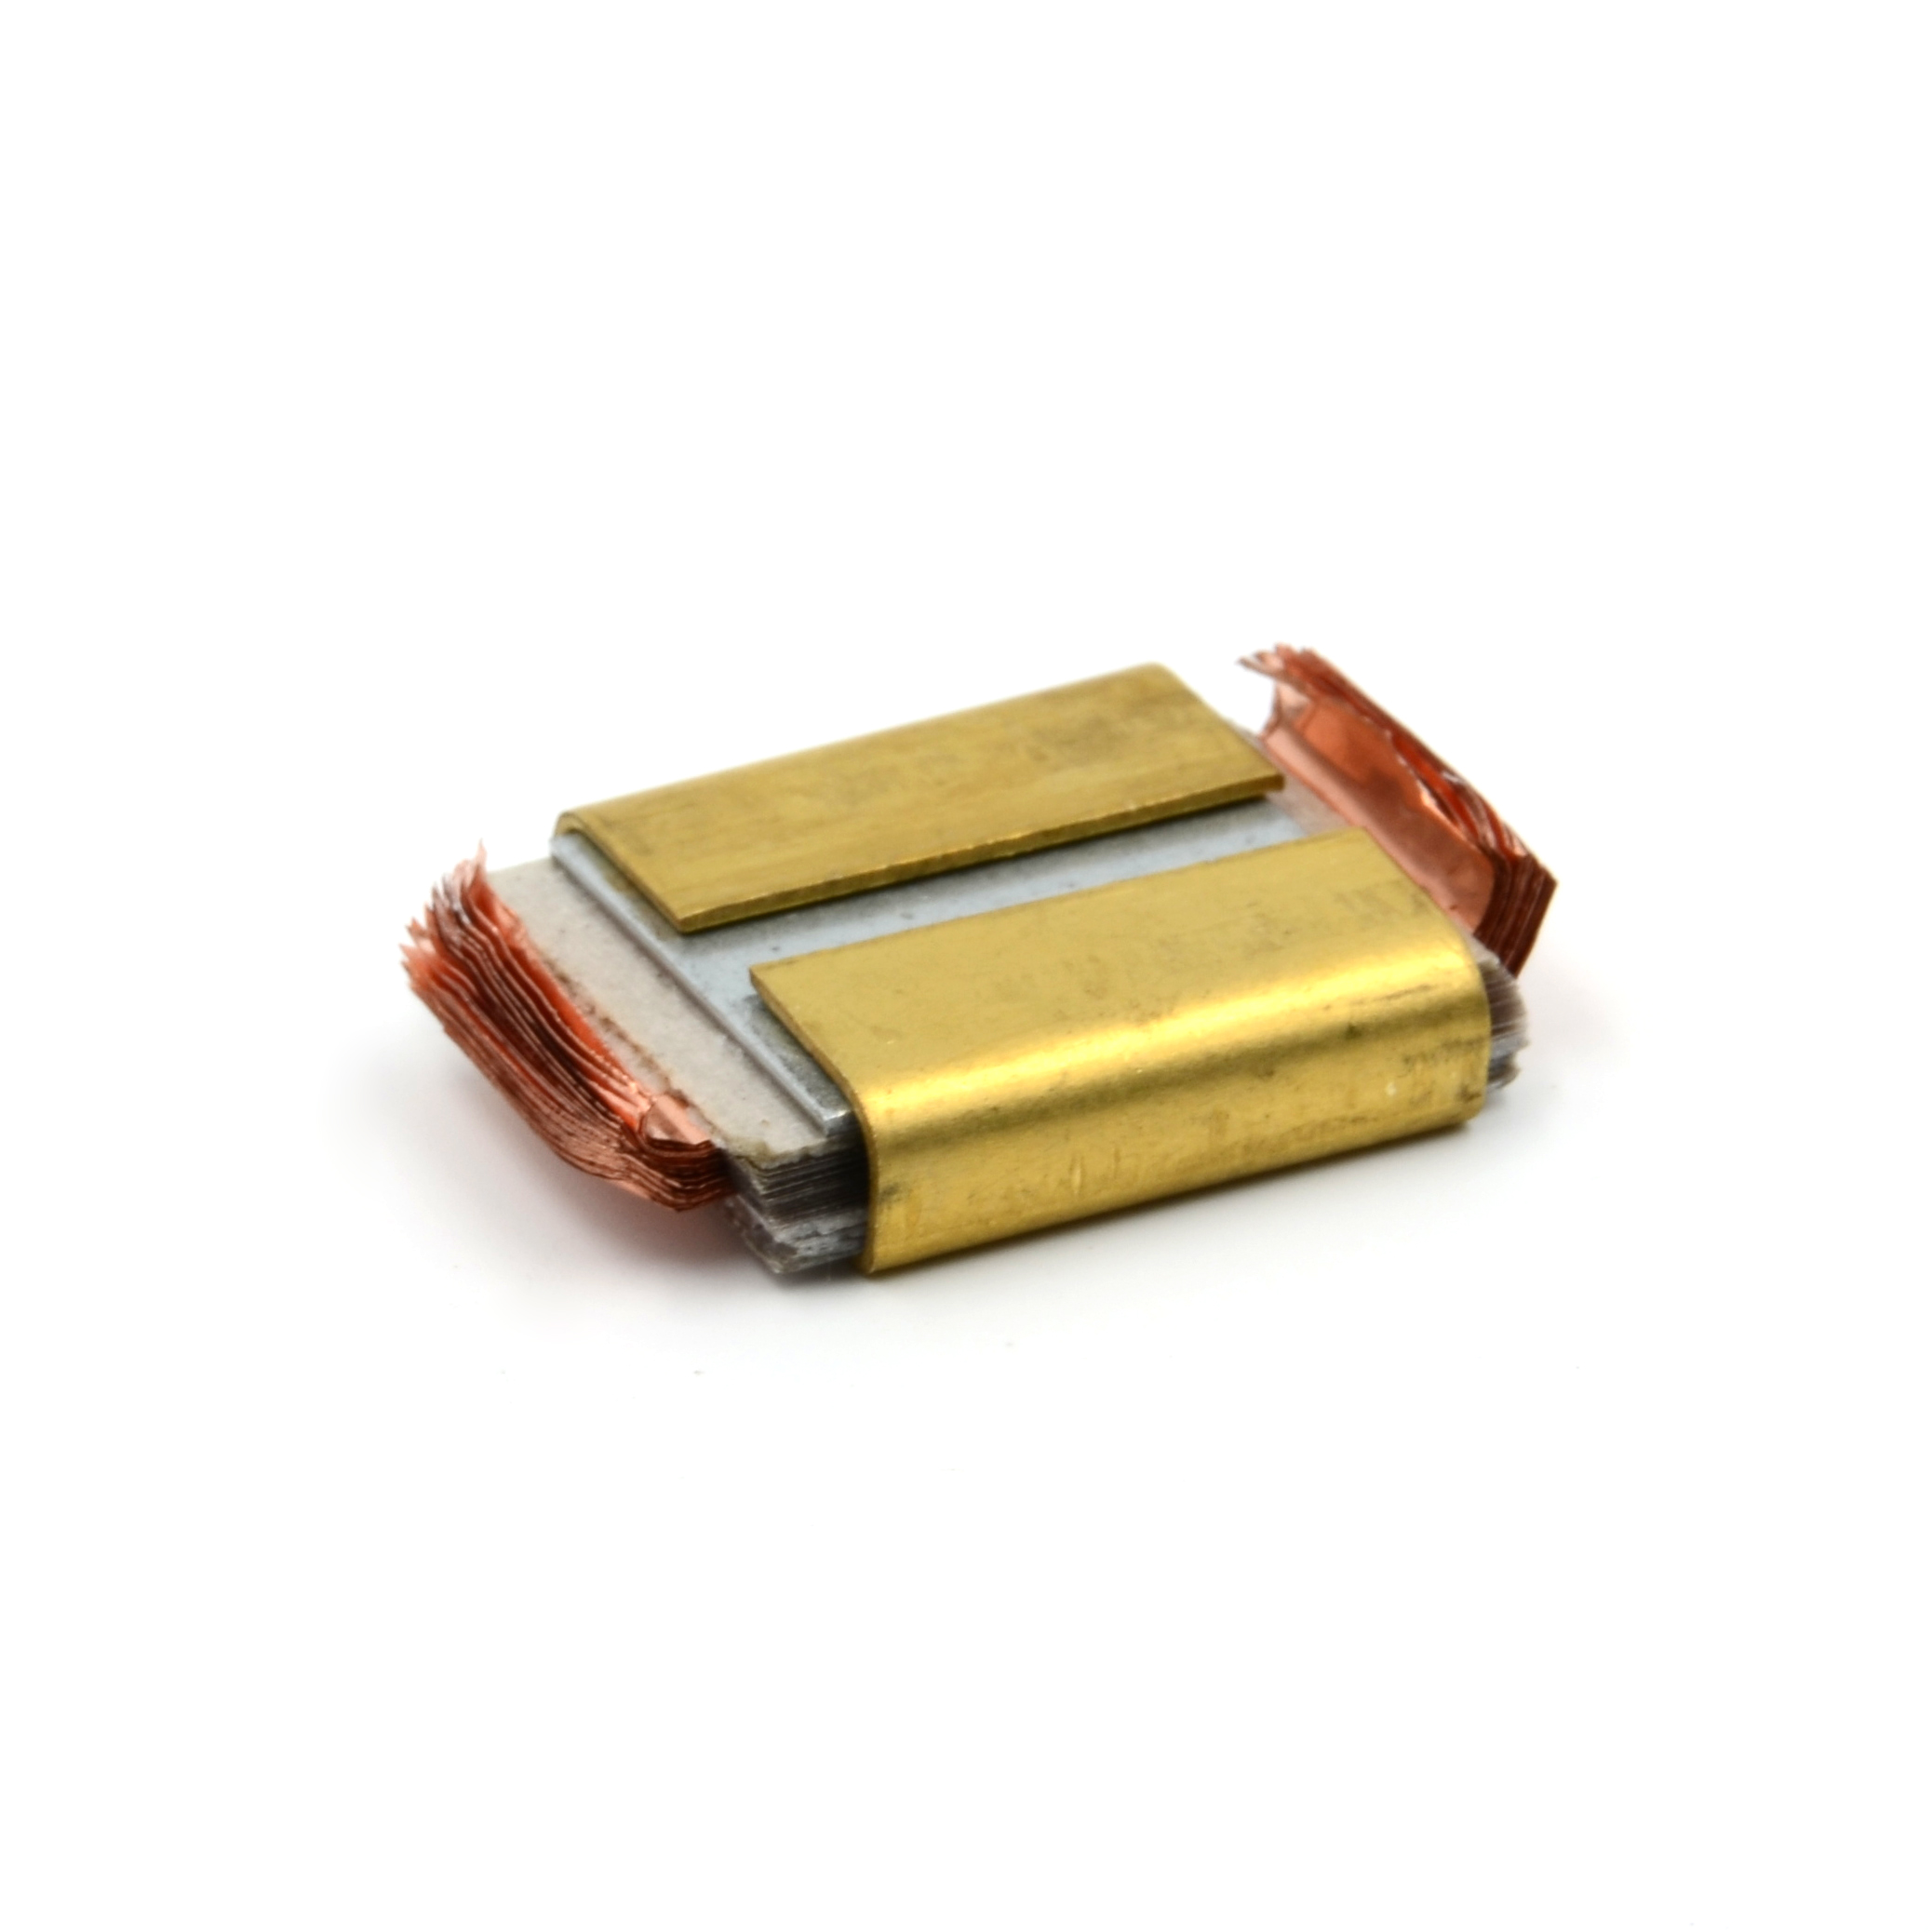 Induction heater mica capacitor